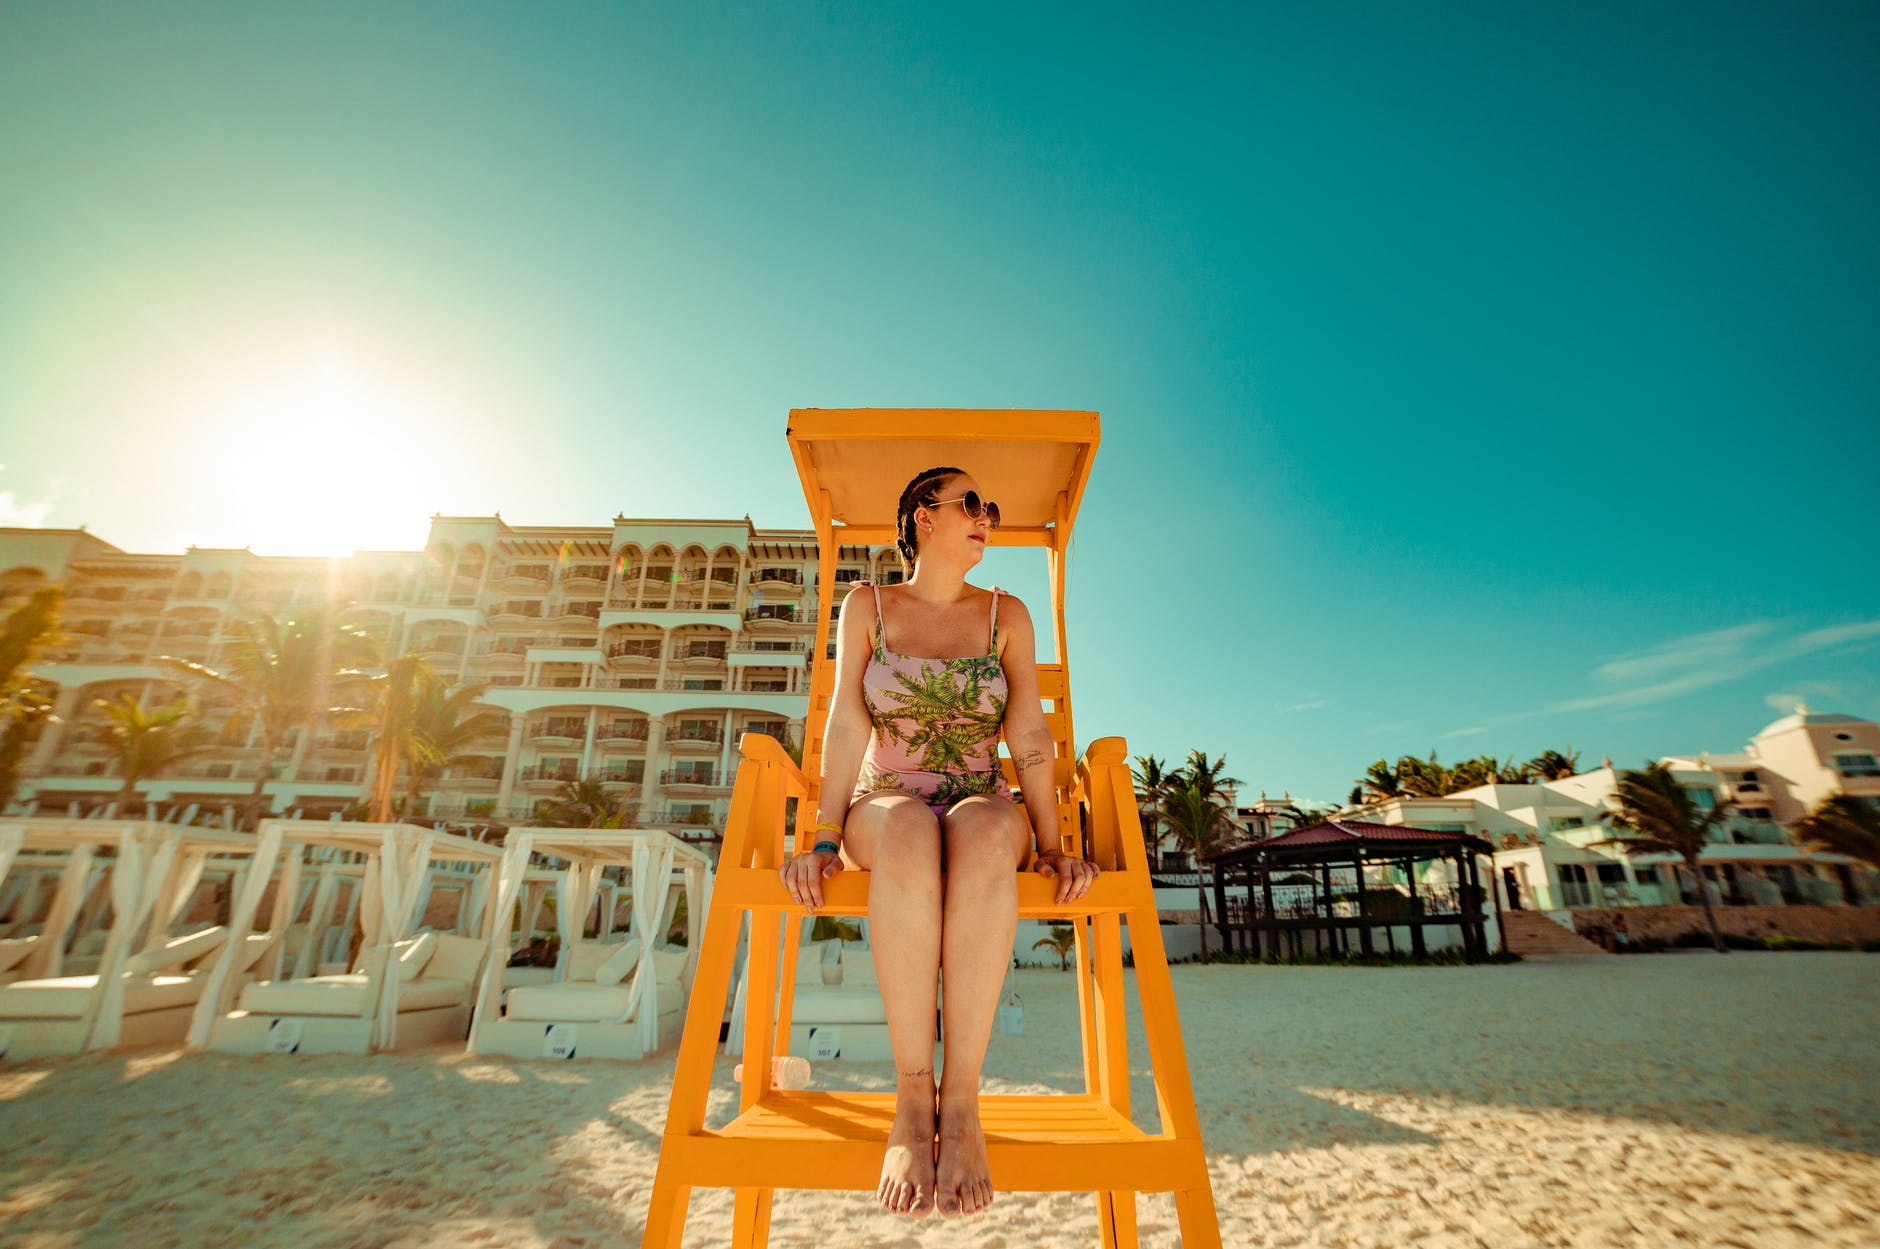 photo of woman sitting on lifeguard tower